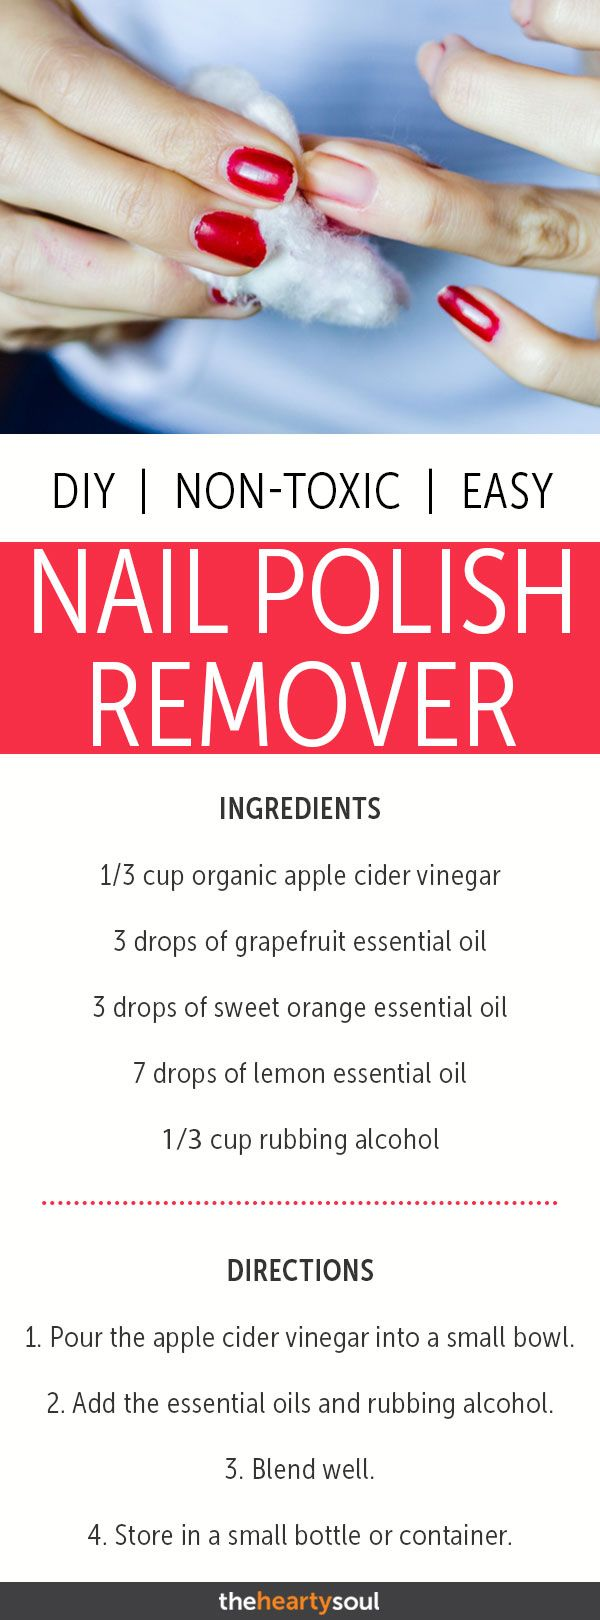 How to Make Non-Toxic Nail Polish Remover with Grapefruit, Orange, and Lemon Oil...